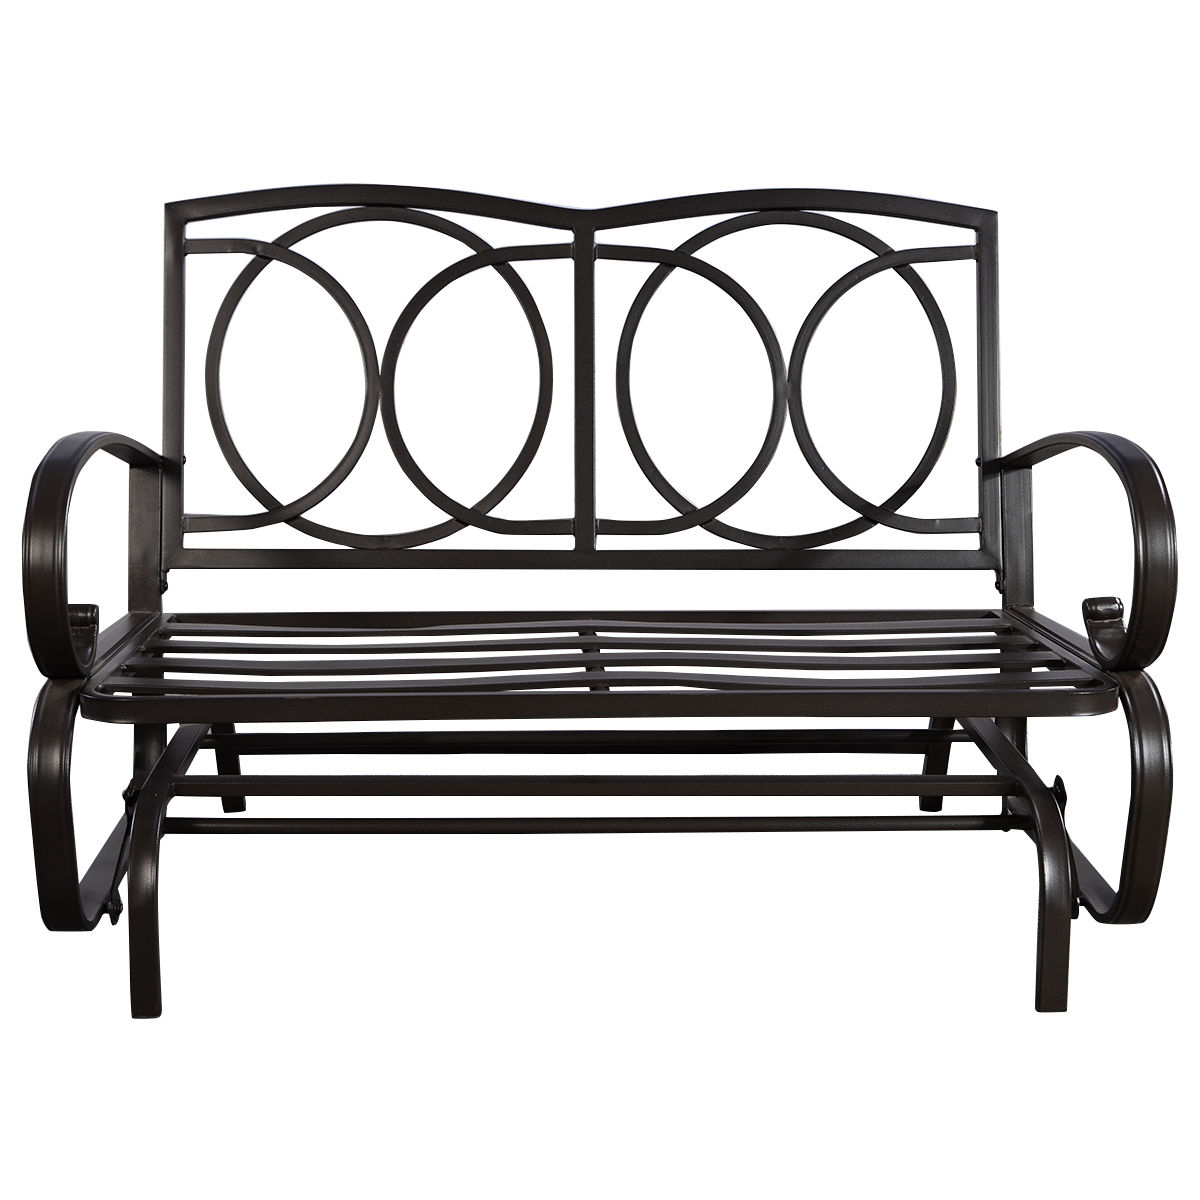 Details About Glider Outdoor Patio Rocking Bench Loveseat Cushioned Seat Steel Frame Furniture Inside Best And Newest Rocking Love Seats Glider Swing Benches With Sturdy Frame (View 20 of 30)